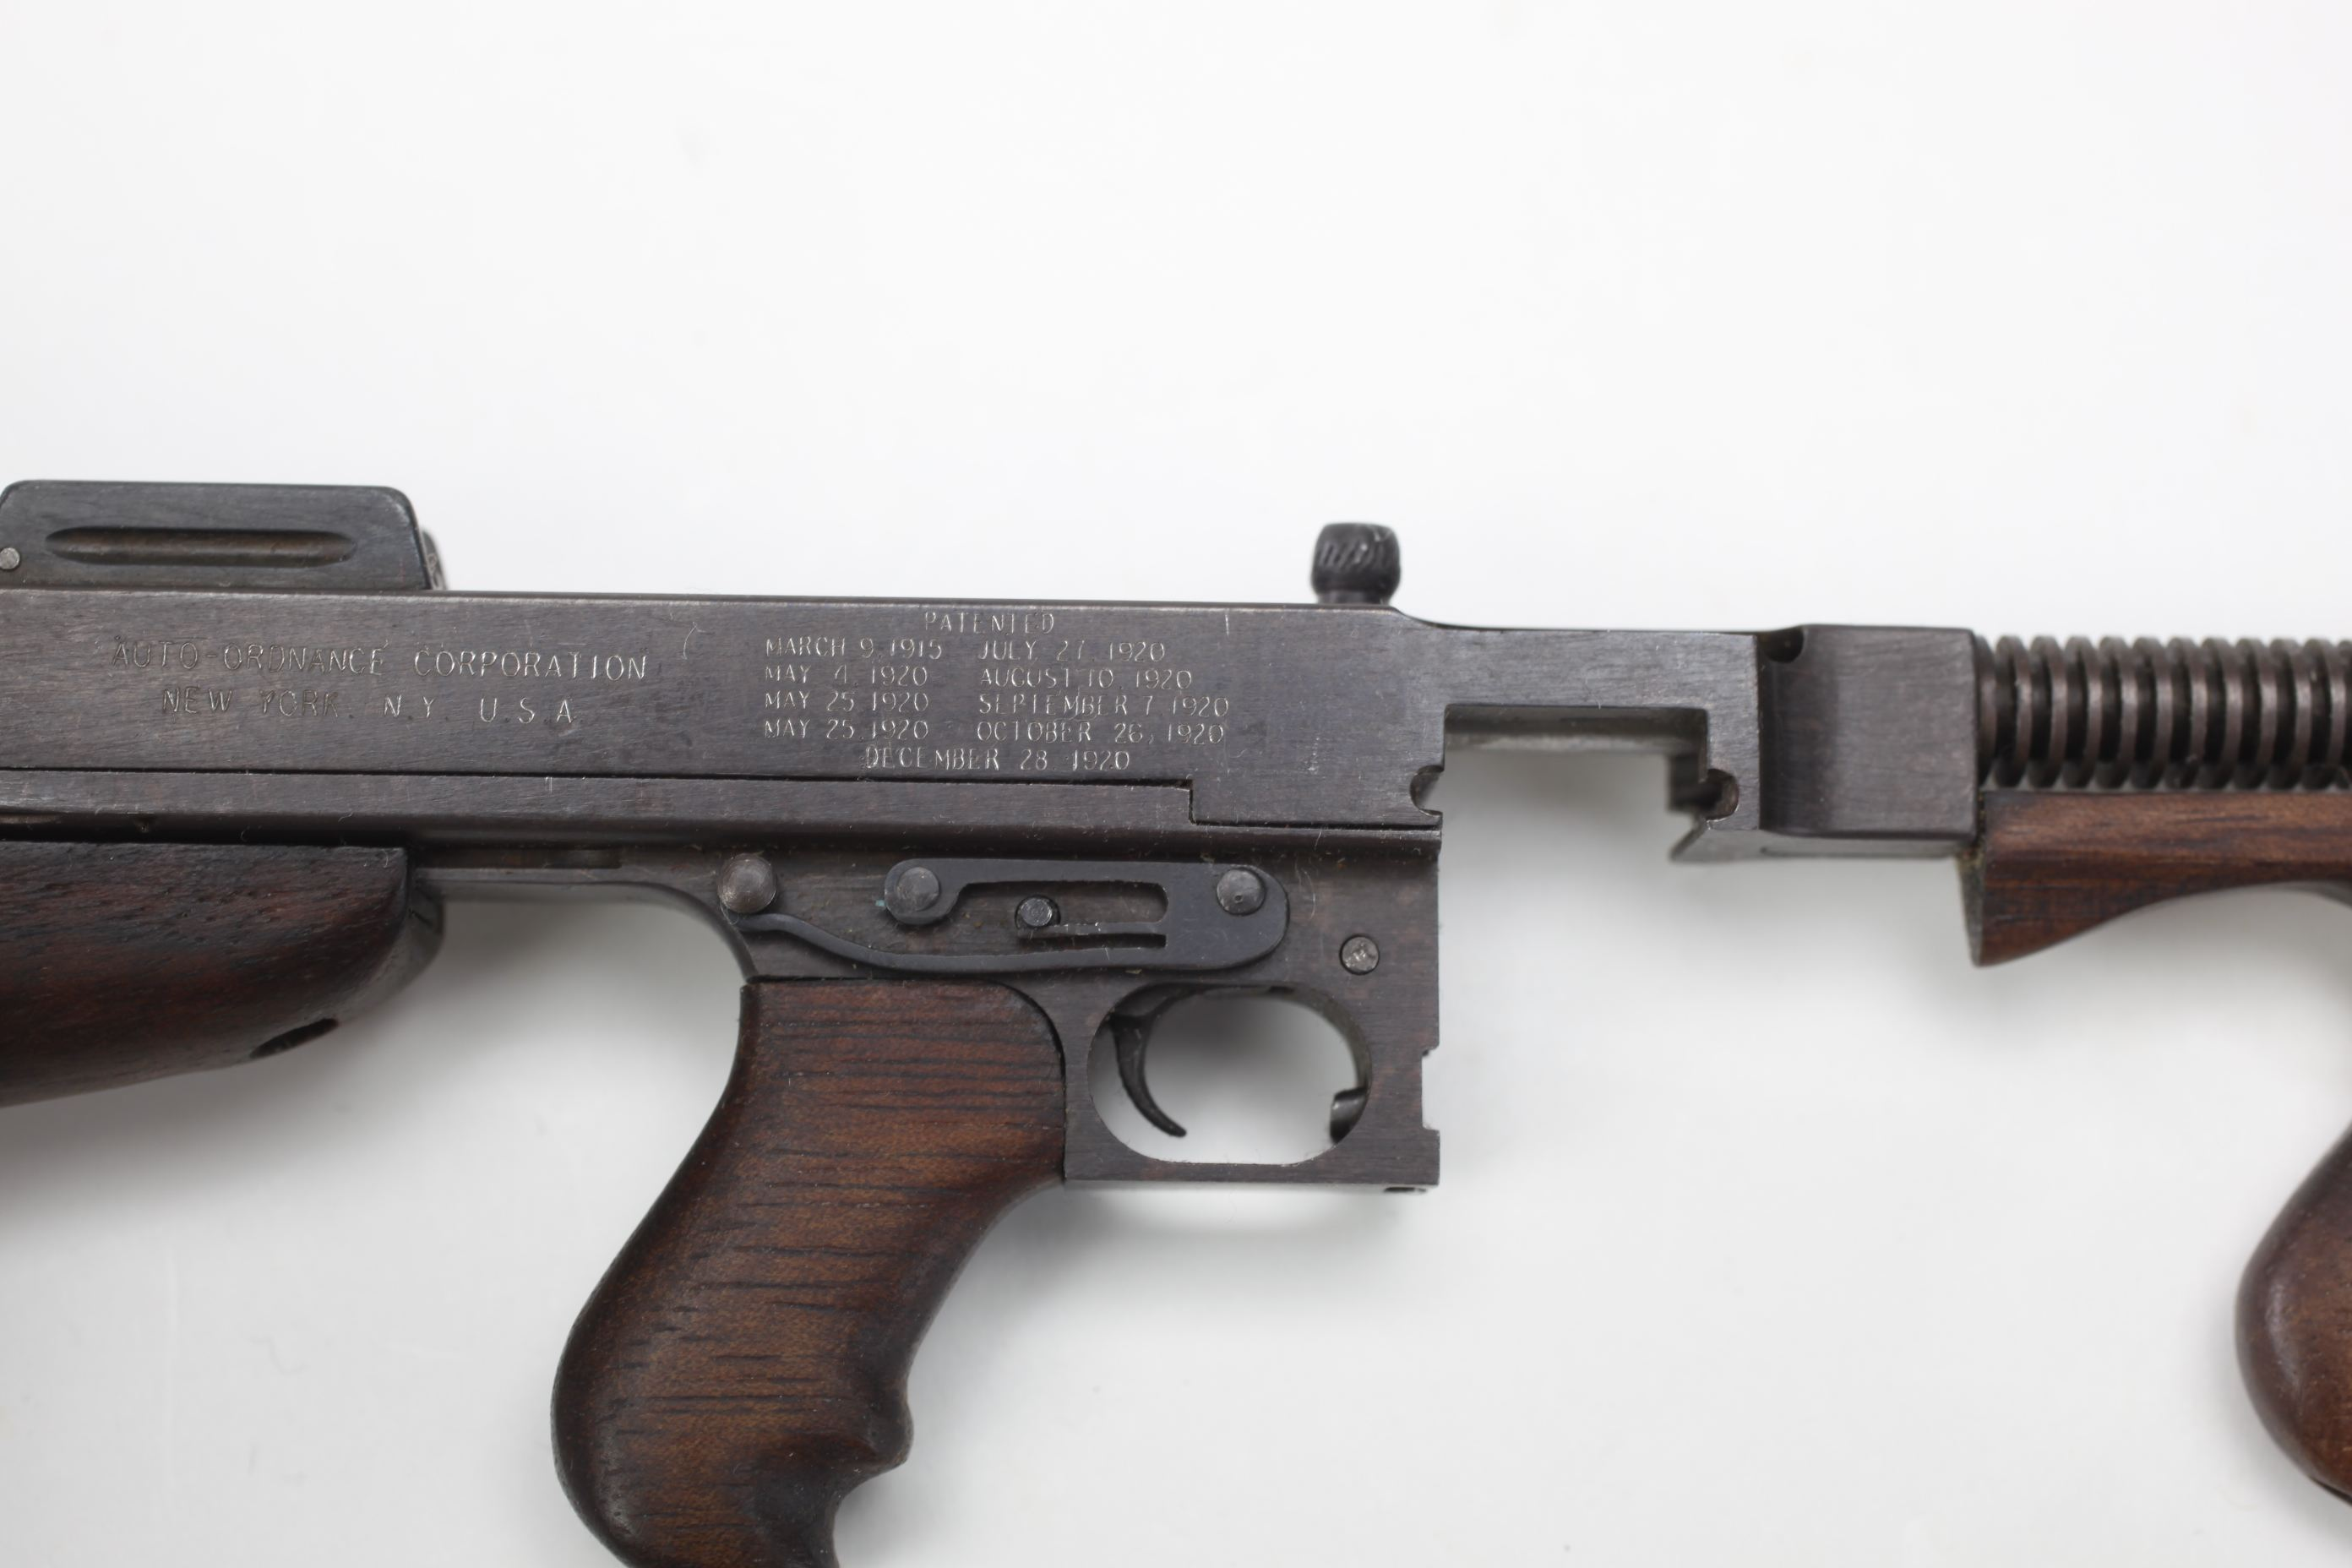 Miniature Auto-Ordnance Thompson Model 1921 Submachine Gun